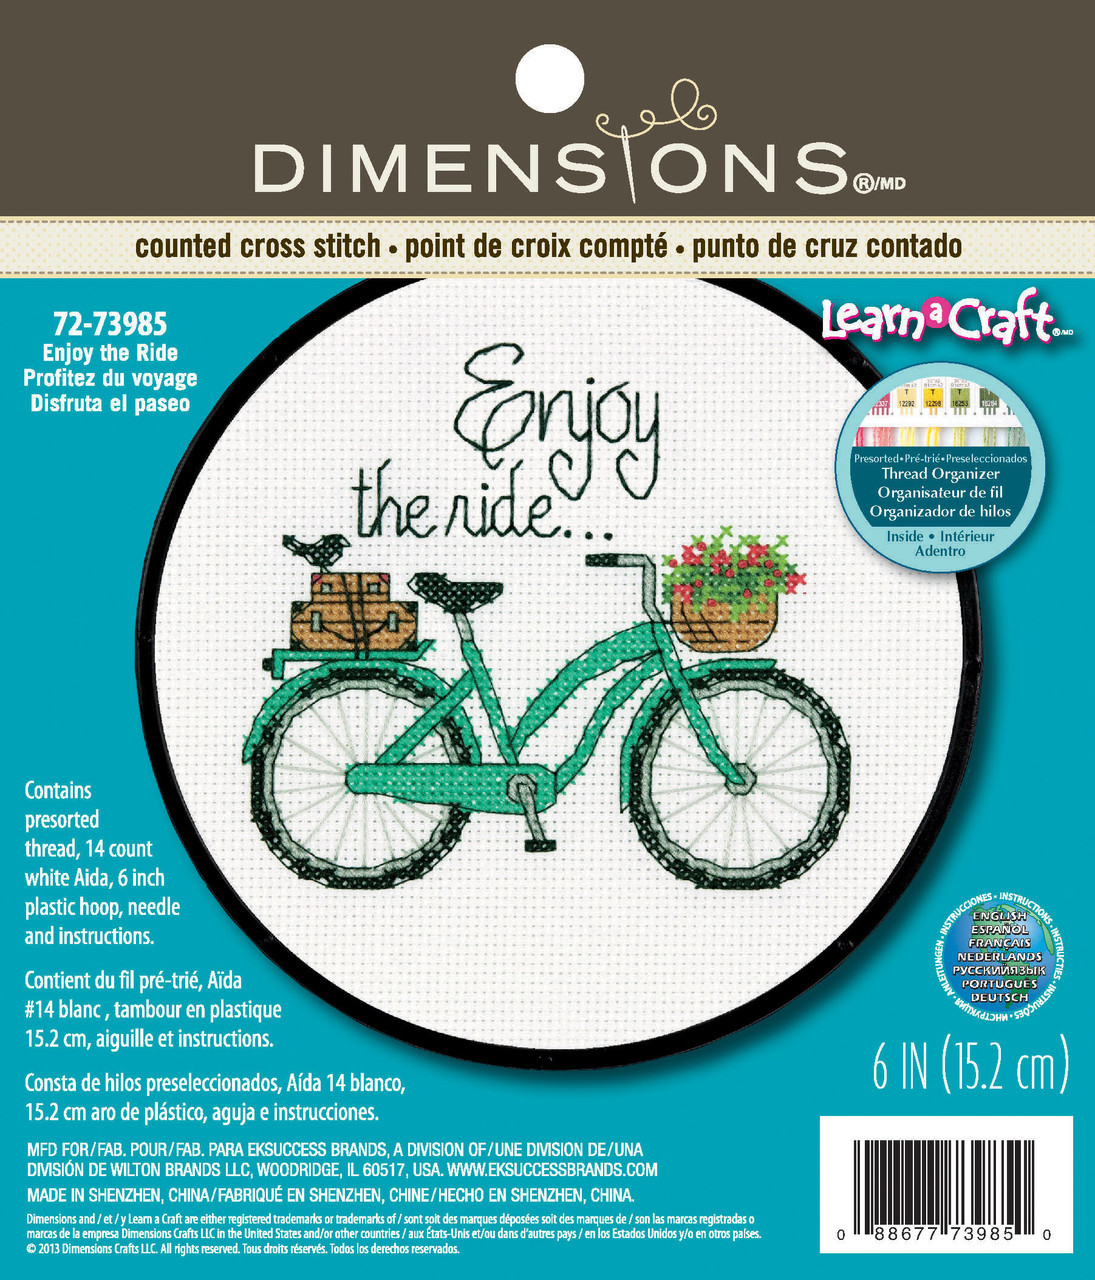 Dimensions Learn a Craft - Enjoy the Ride